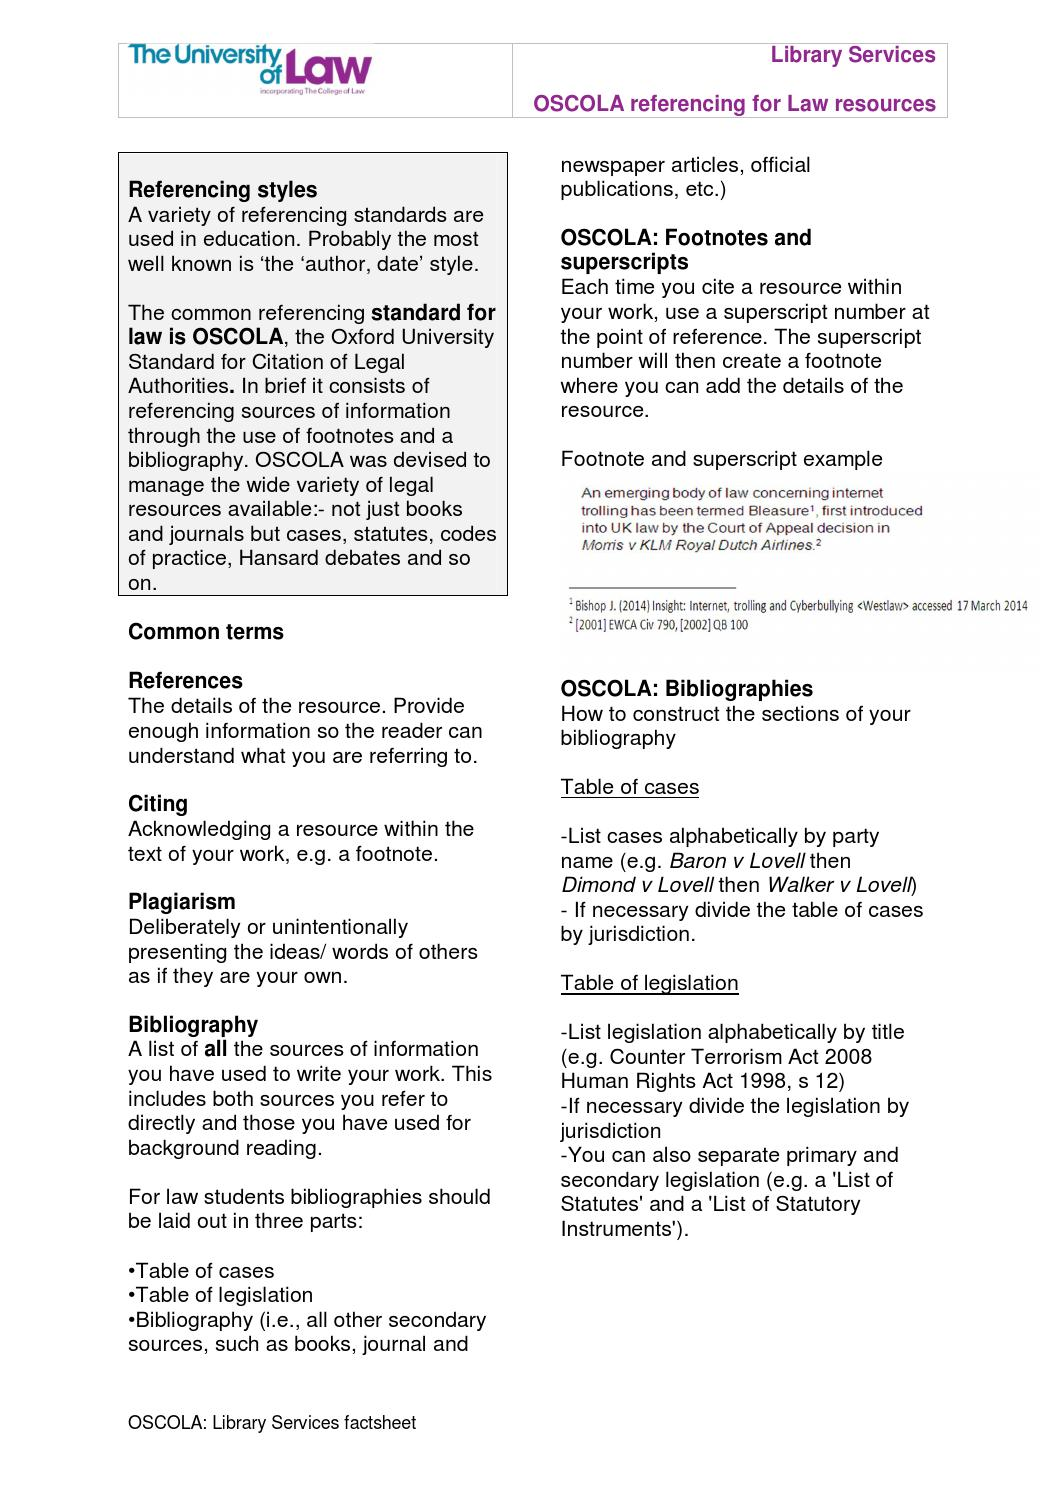 Texas Instruments Ti Analog Embedded Processing Oscola Library Services Factsheet V2 By Ulawlibraries Issuu